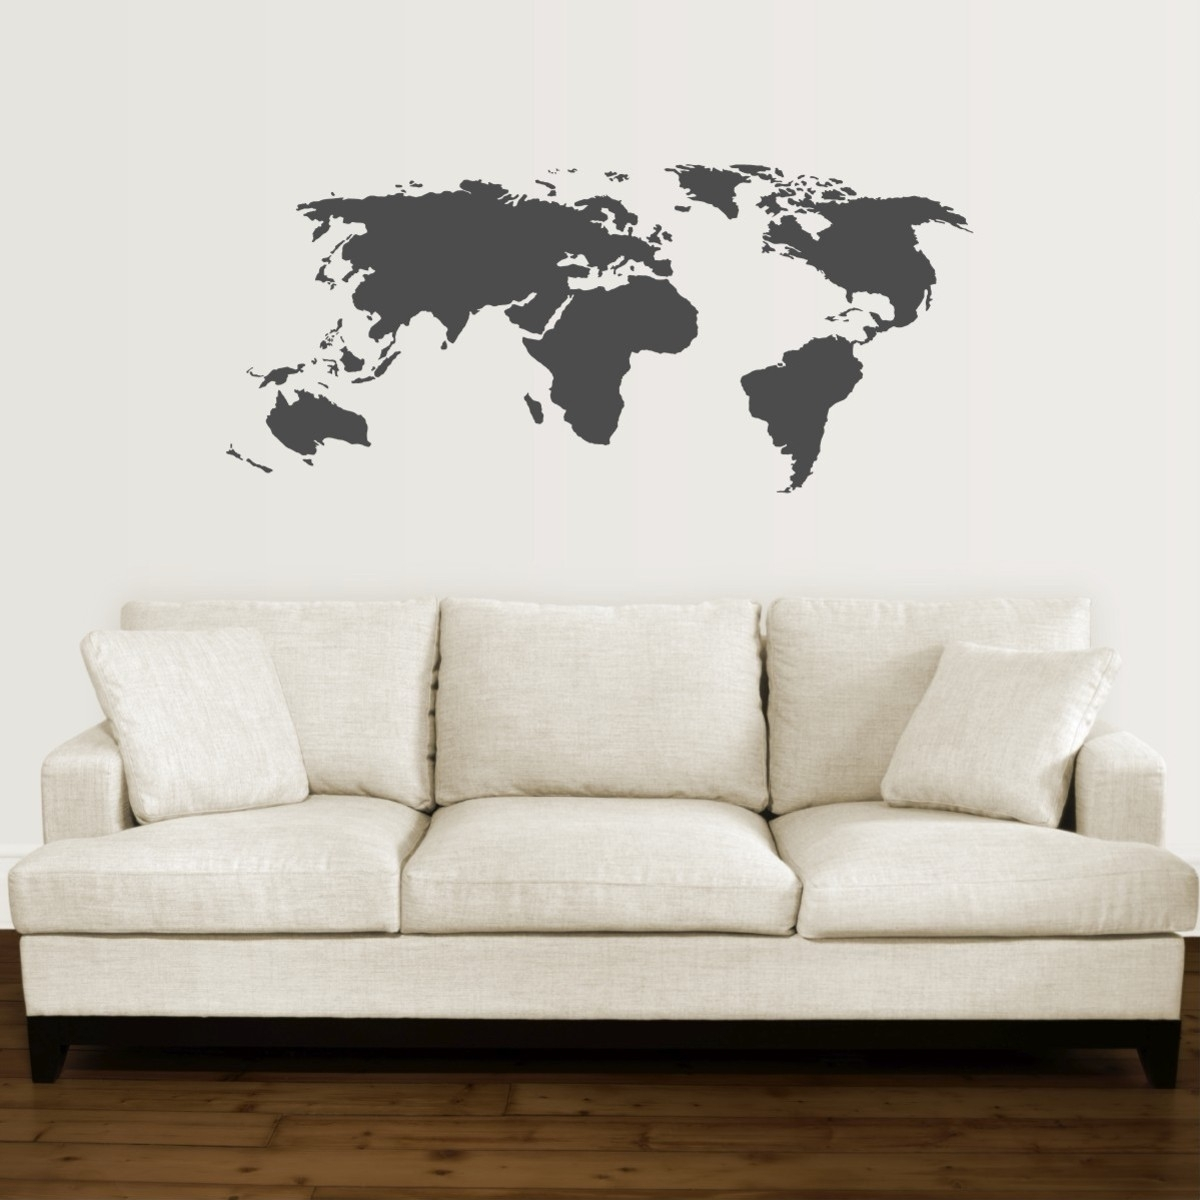 Current World Map For Wall Art For 17 Cool Ideas For World Map Wall Art – Live Diy Ideas (View 6 of 15)